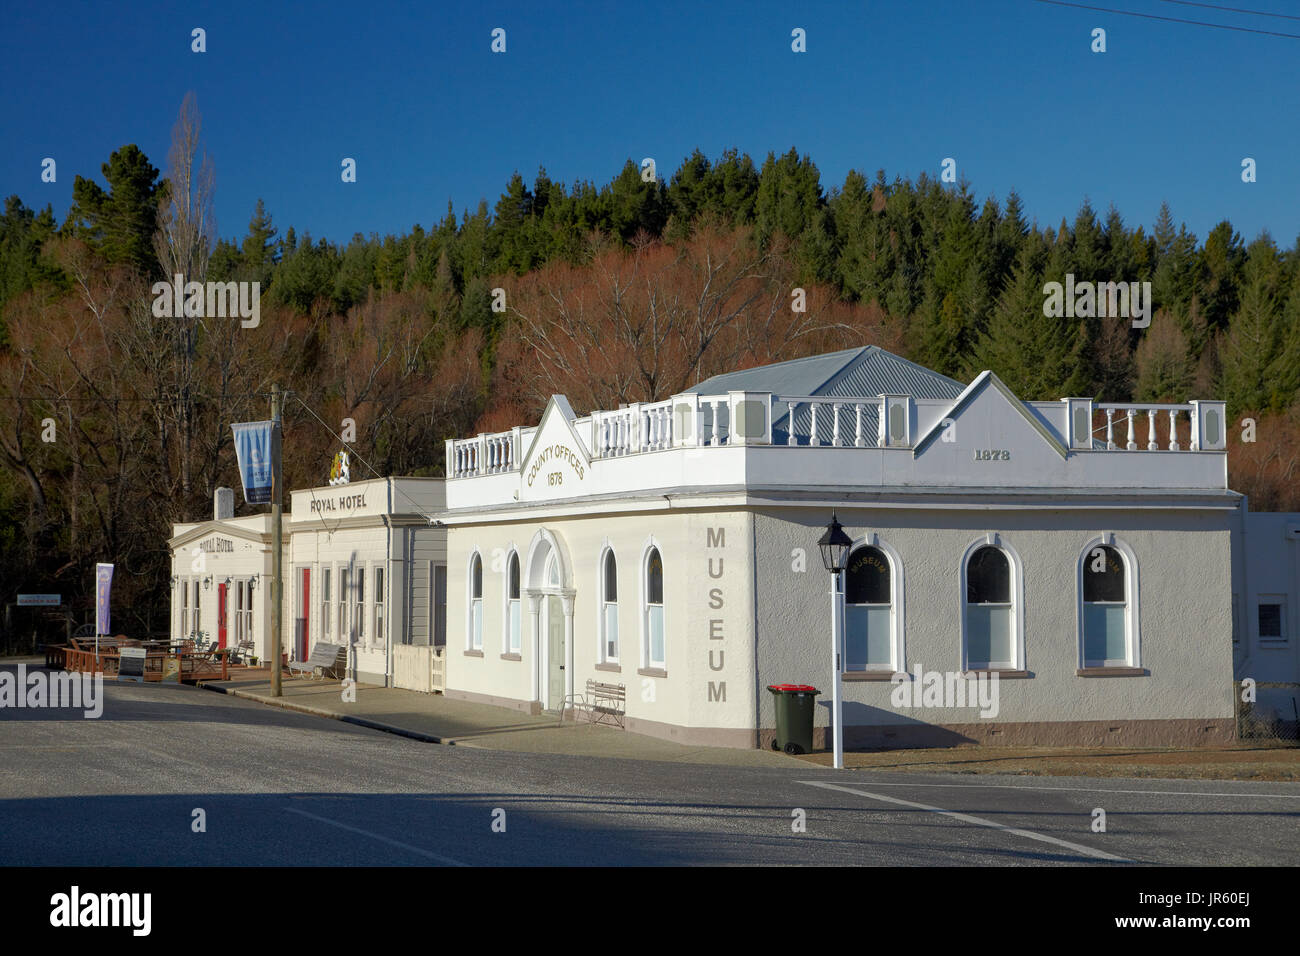 Maniototo County Council Offices (1878), and Royal Hotel (1878), Naseby, Maniototo, Central Otago, South Island, New Zealand - Stock Image